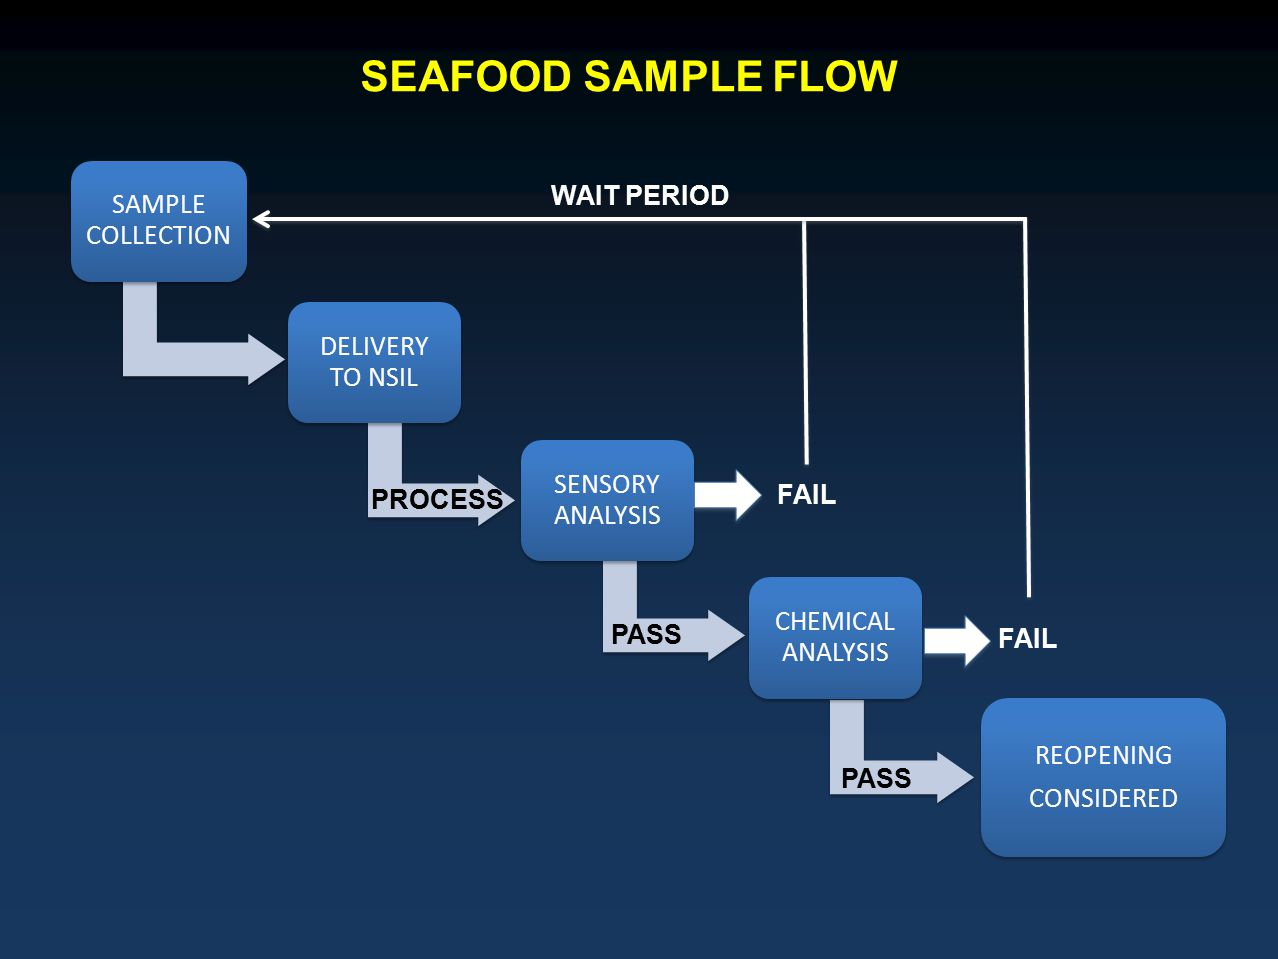 PASS FAIL PASS WAIT PERIOD PROCESS SEAFOOD SAMPLE FLOW PASS